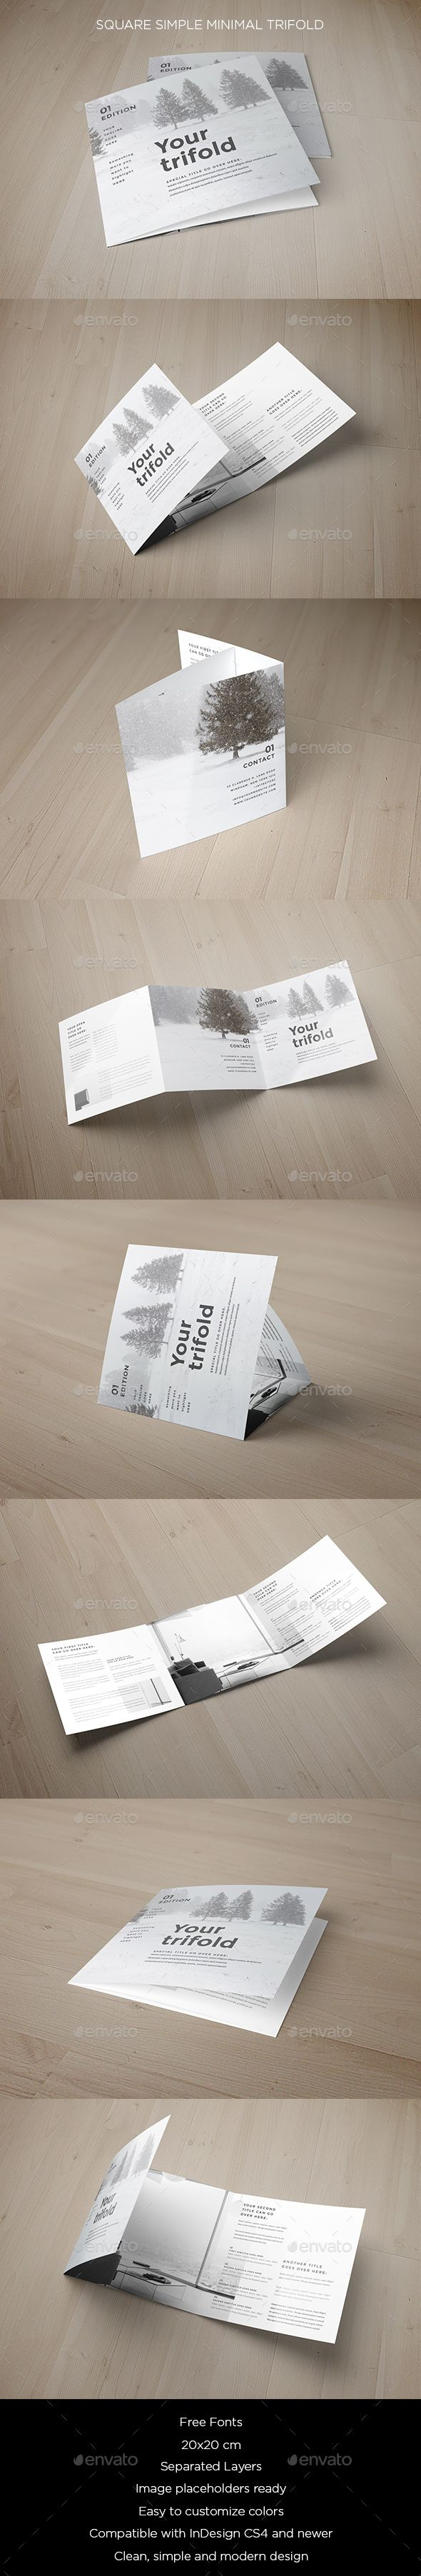 Square Minimal Simple Trifold Brochure Template InDesign INDD. Download here: https://graphicriver.net/item/square-minimal-simple-trifold/17604810?ref=ksioks